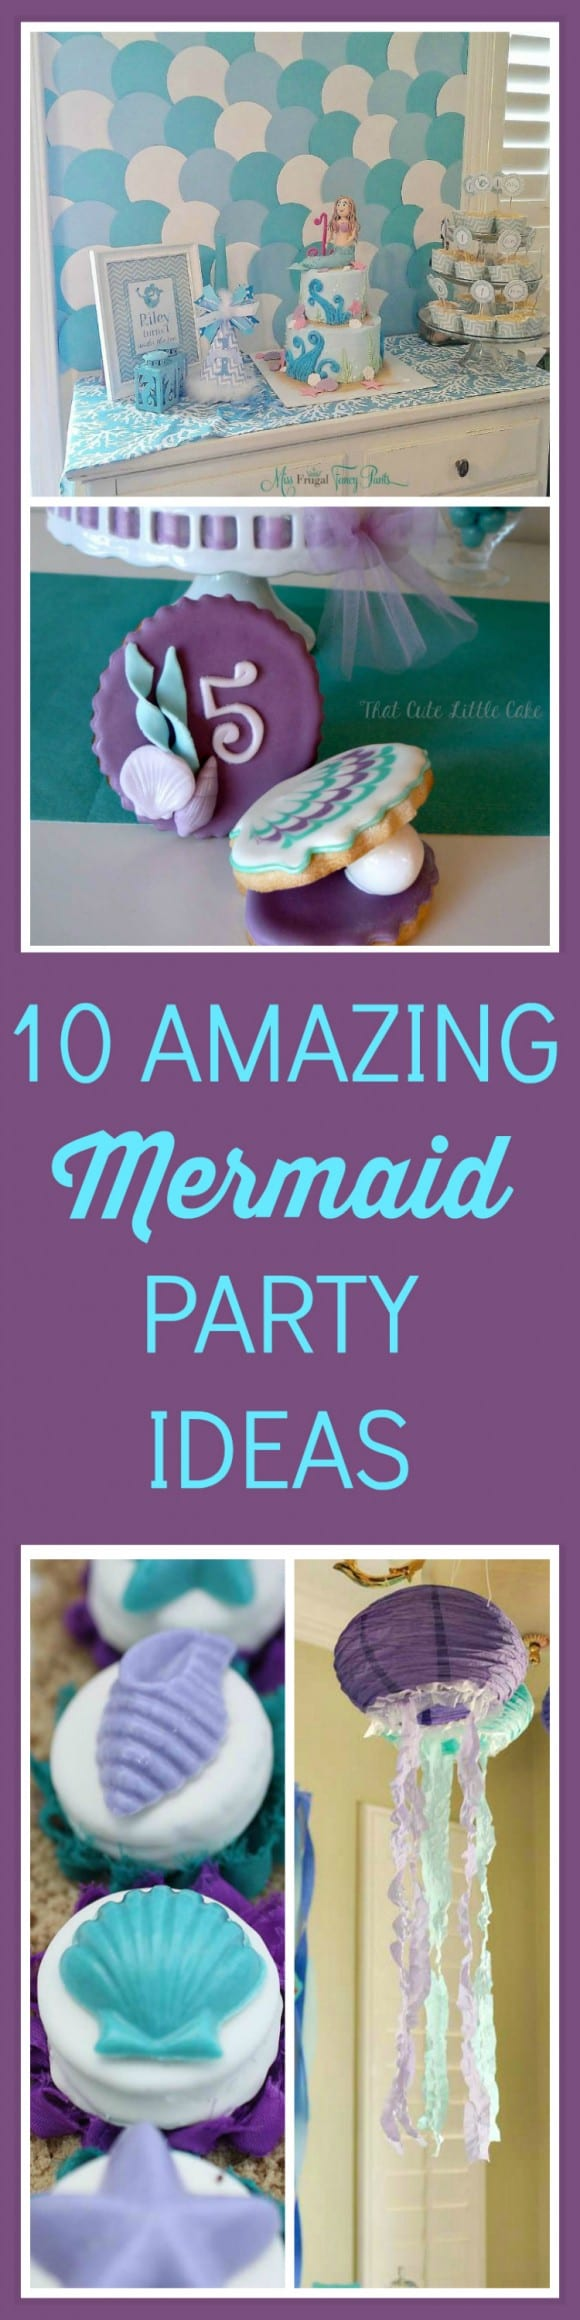 10 amazing mermaid party ideas | CatchMyParty.com